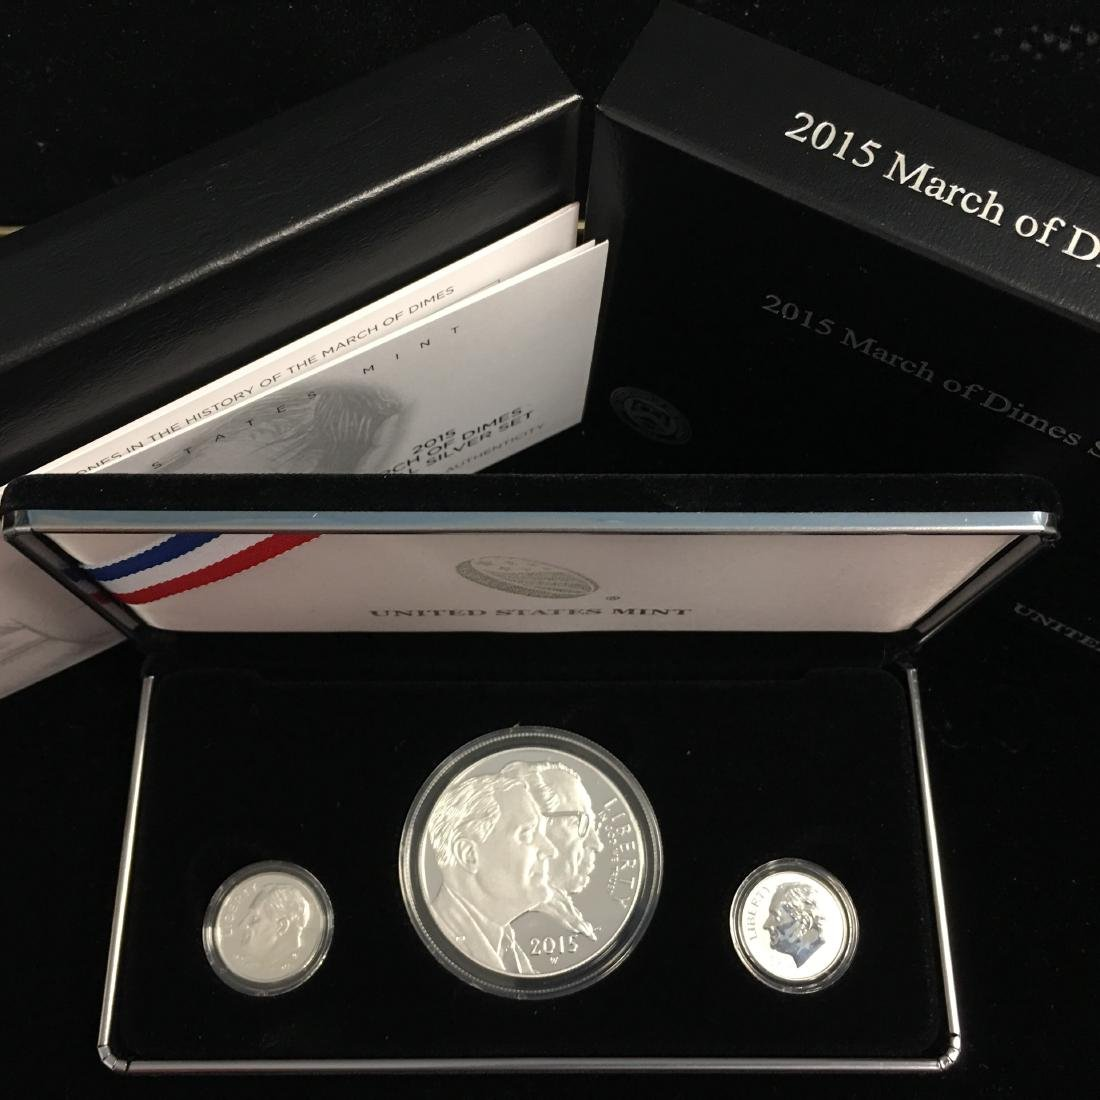 2015 March of Dimes 3 coins Special Commemorative